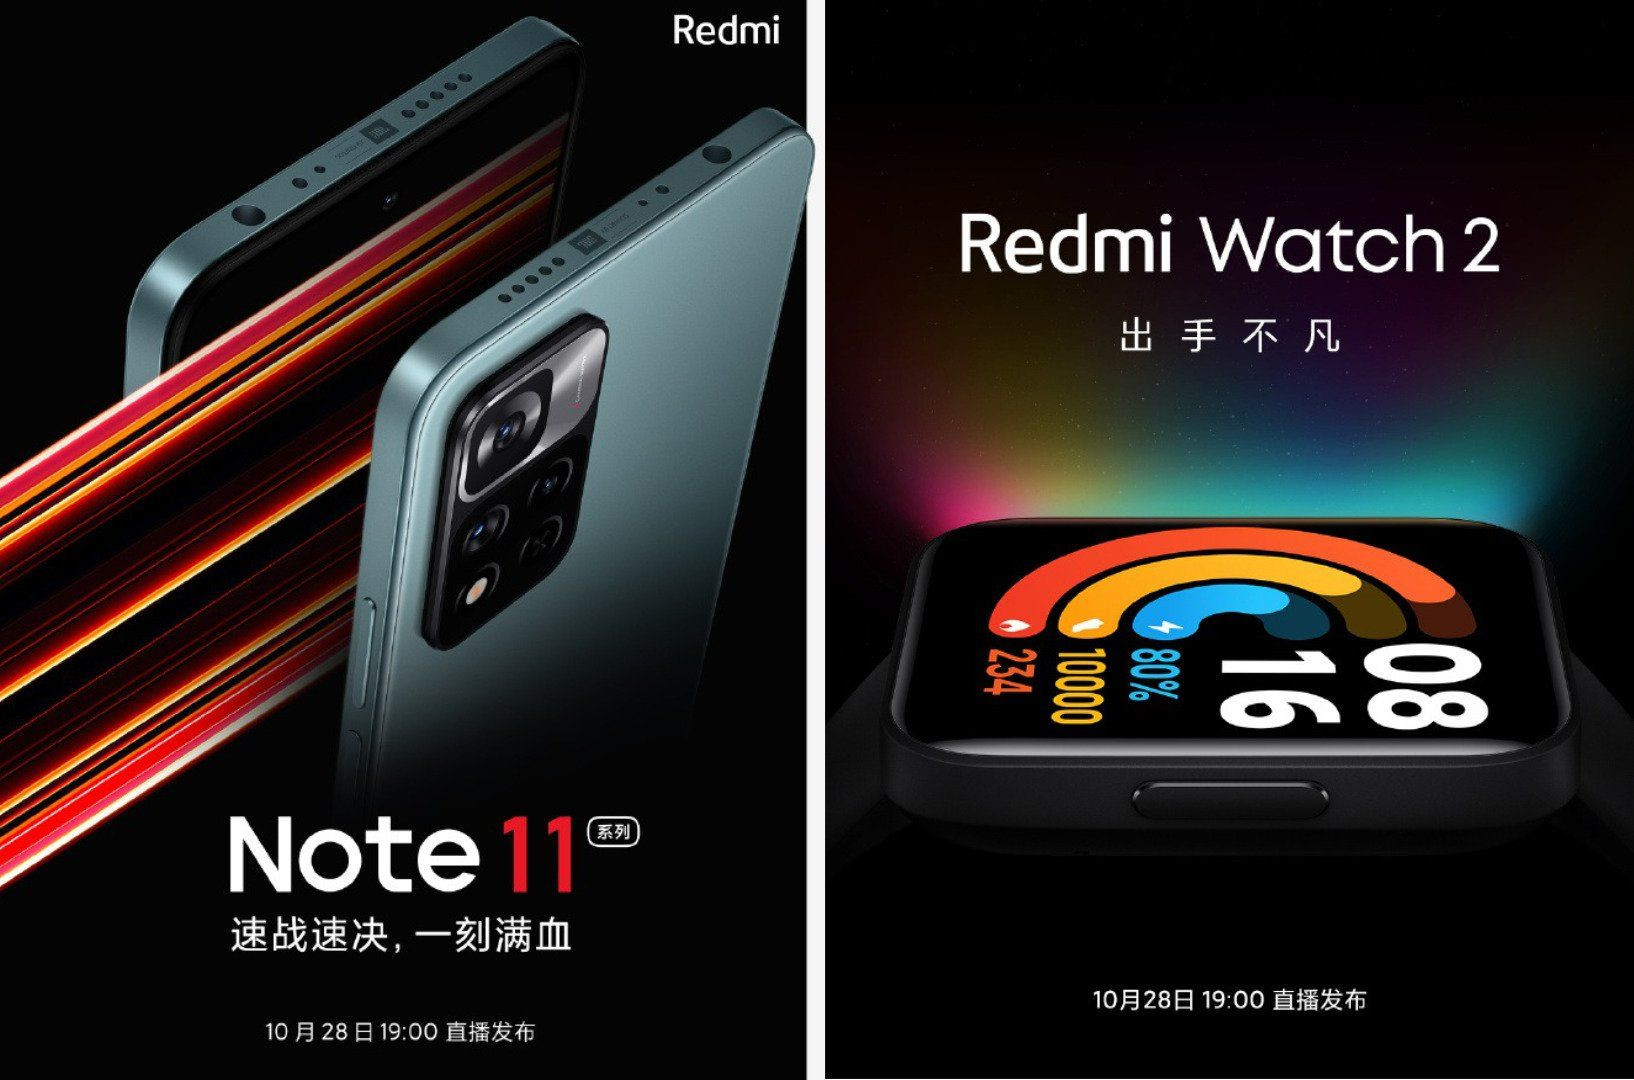 Redmi Watch 2 is coming on October 28